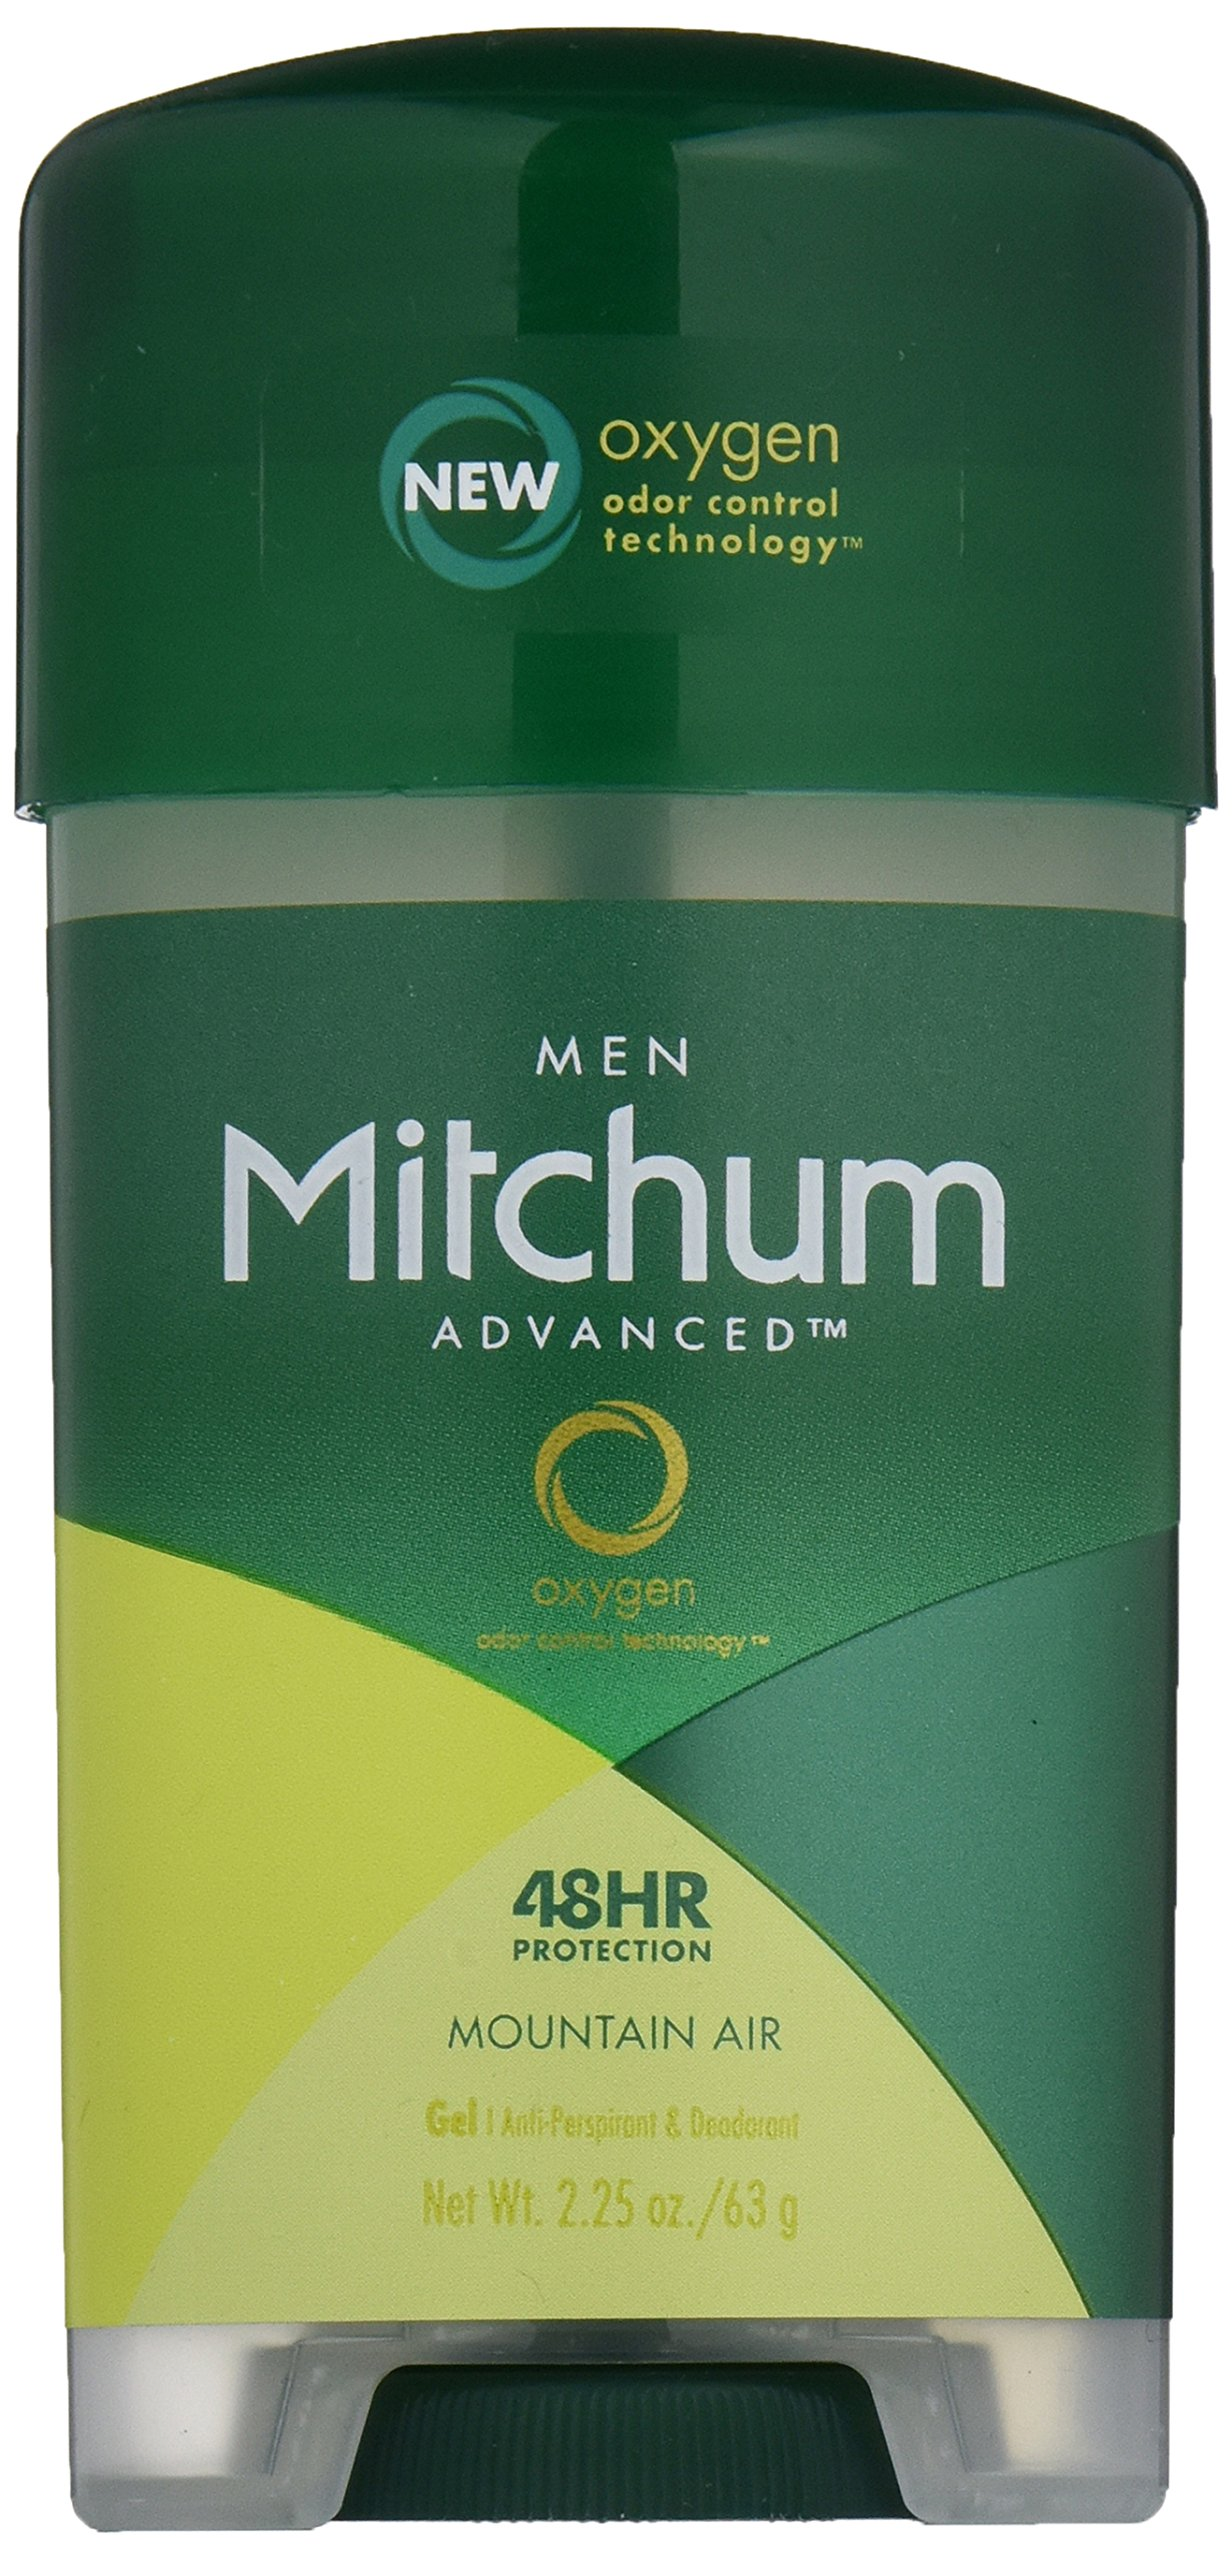 Mitchum Clear Gel Antiperspirant and Deodorant Mountain Air Scent 2.25 oz.